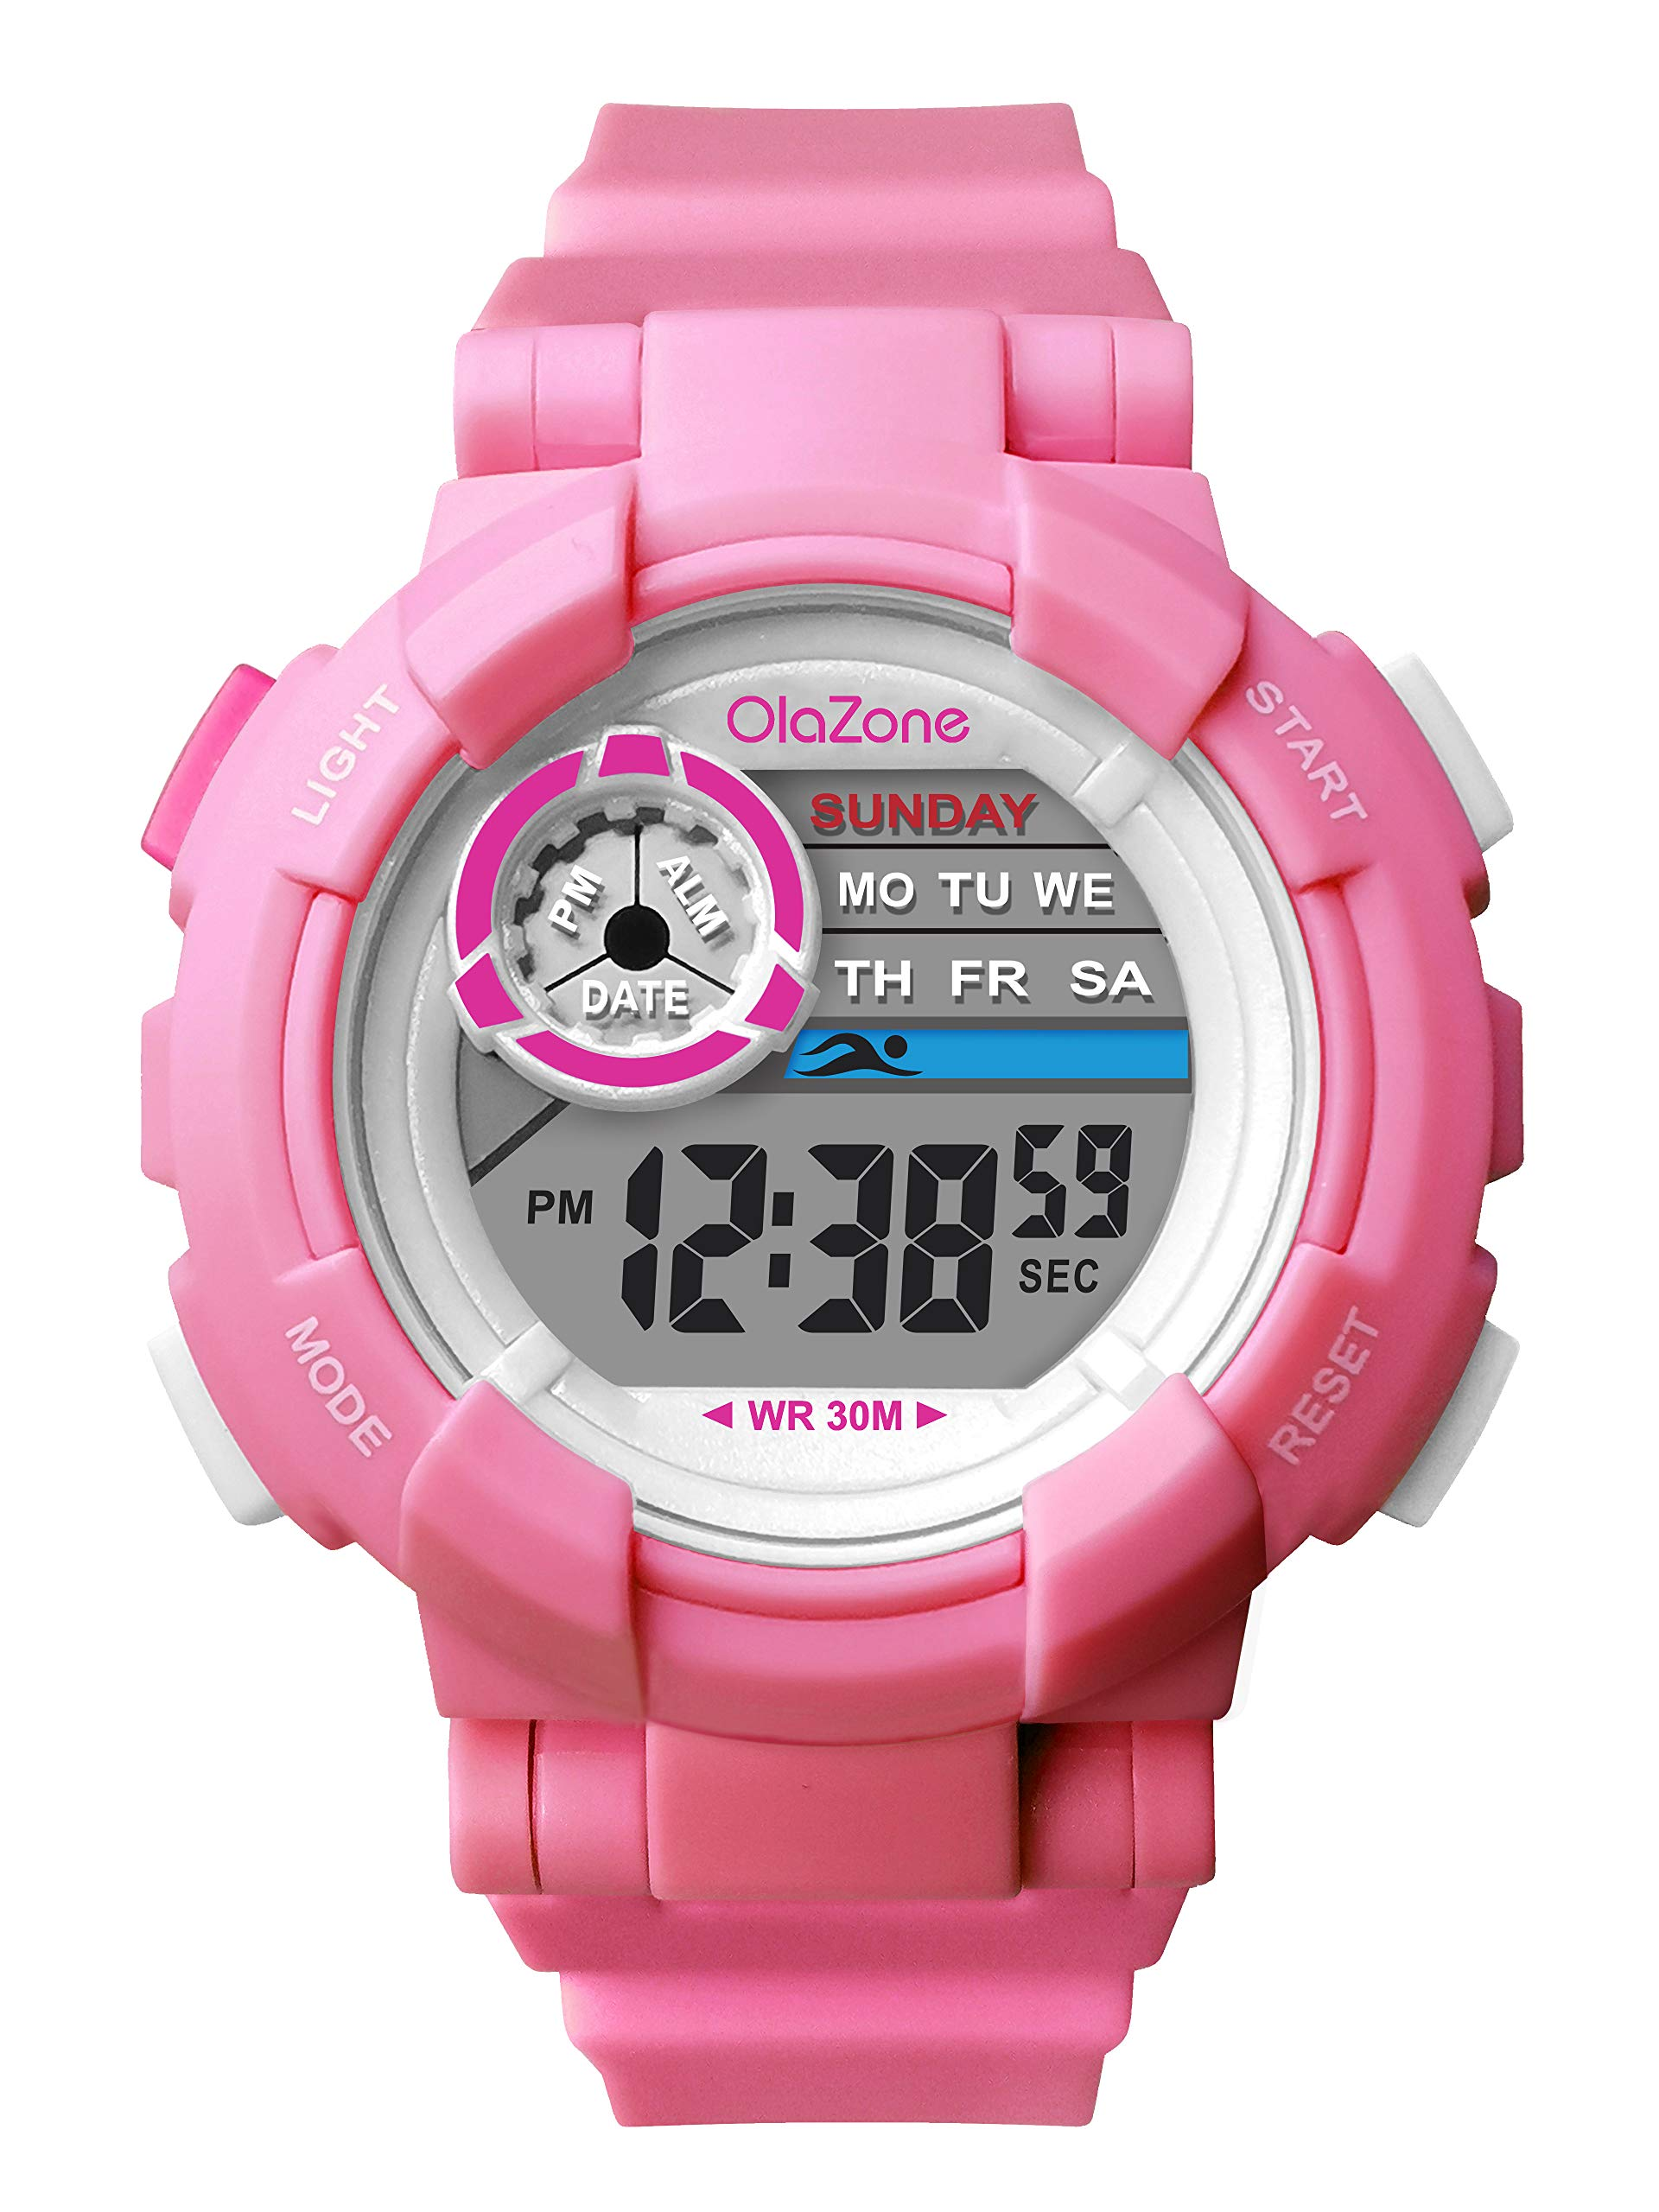 Kids Watch Girls Boys Digital Sports 7-Color Flashing Light Water Resistant 100FT Alarm Gifts for Girls Boys Age 5-10 481 (Pink-2)